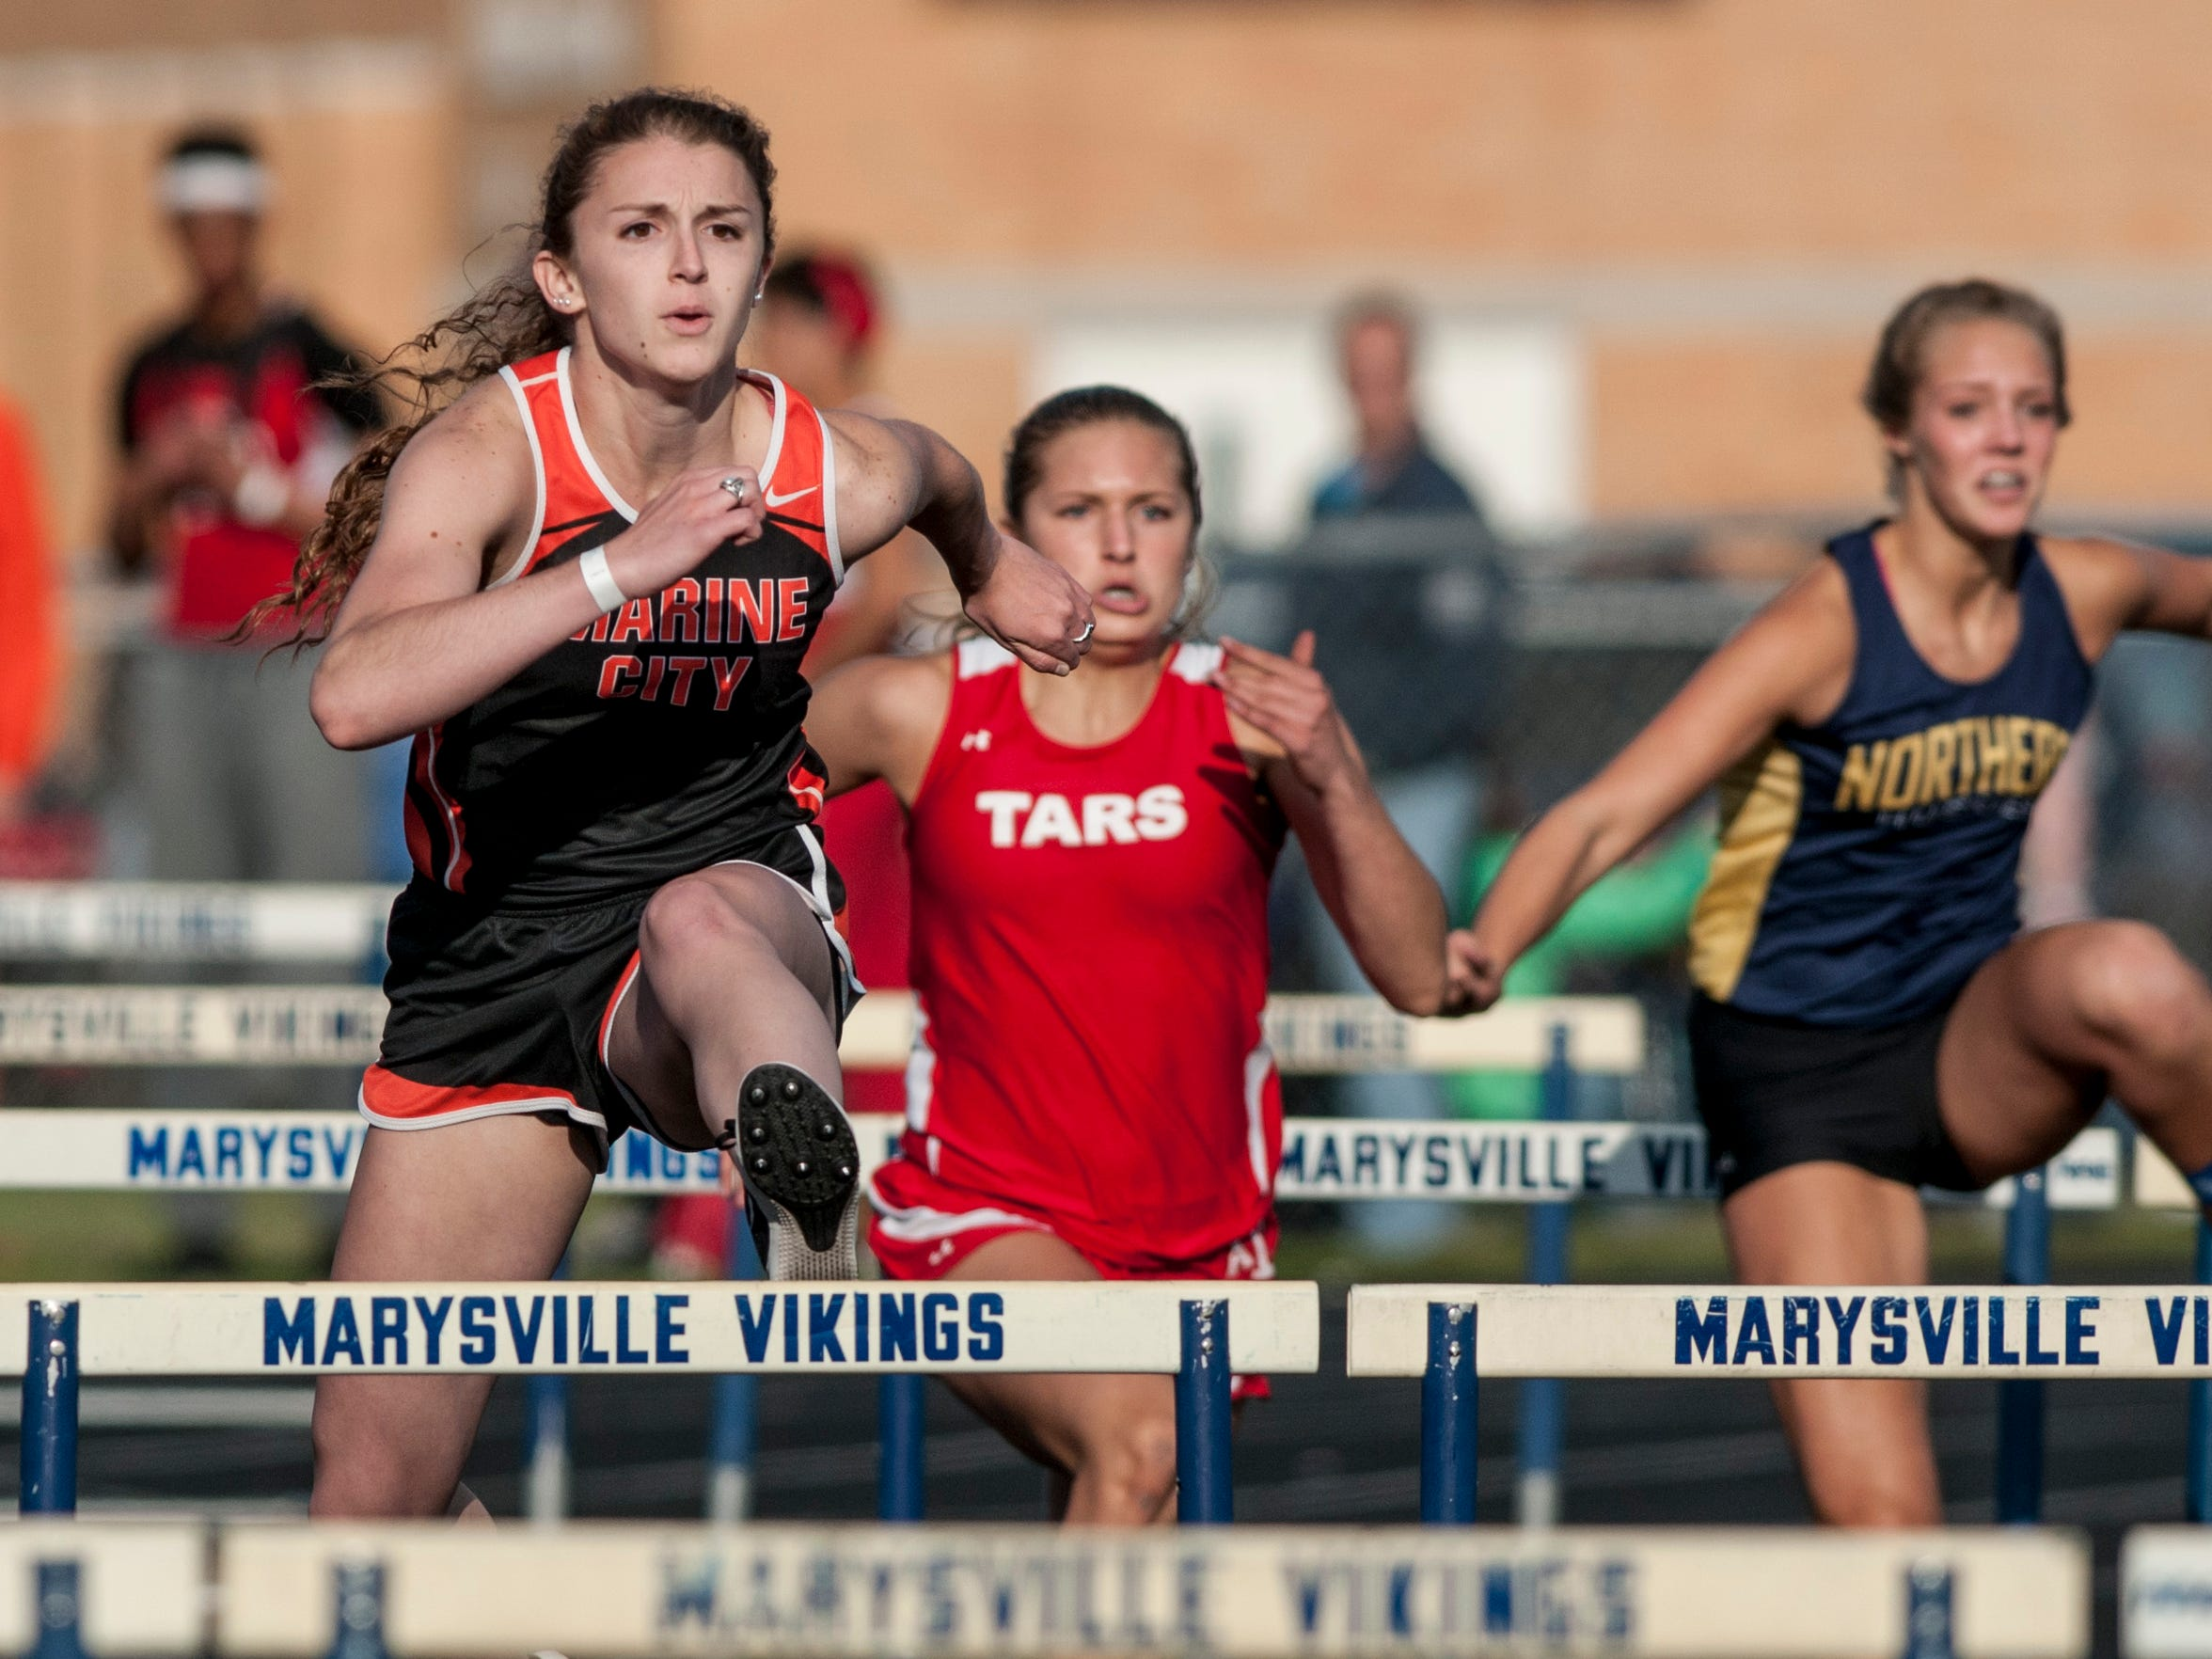 Marine City senior Hannah Coverdill competes in the 100-meter hurdles during the Marysville Invitational track meet Friday, May 13, 2016 at Marysville High School.